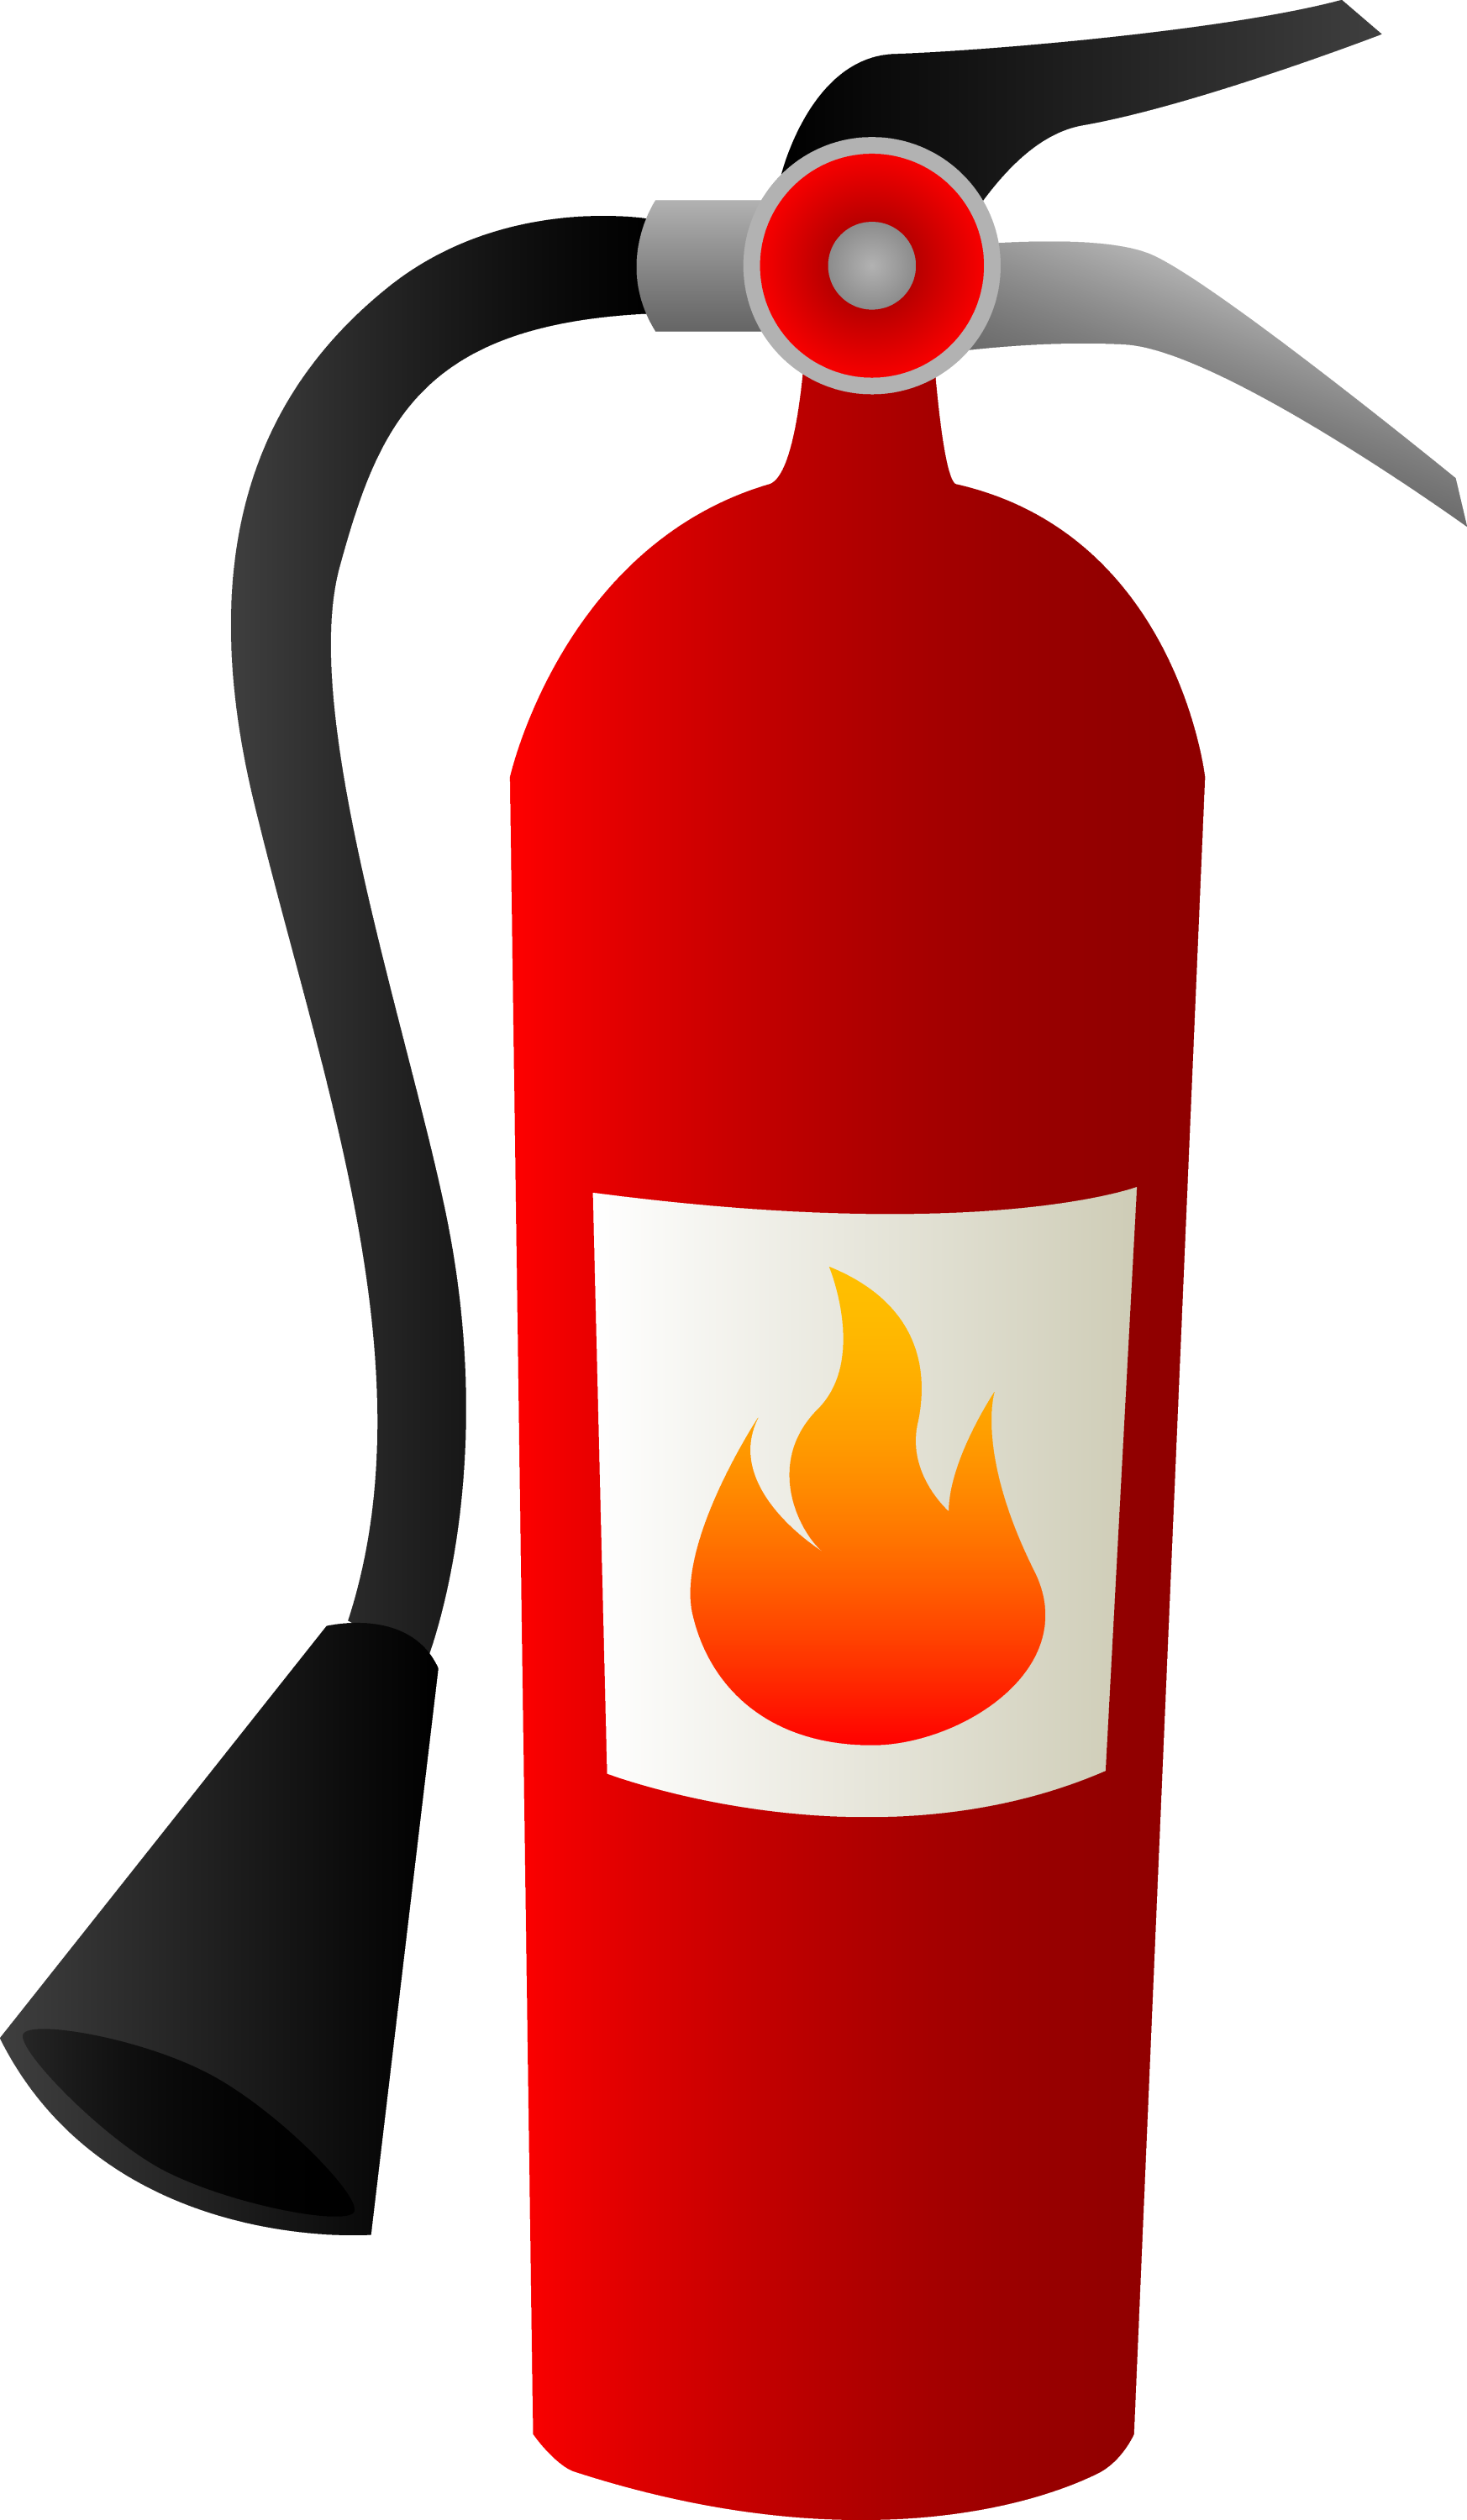 About Clip Art >> Fire Extinguisher - Free Clip Art